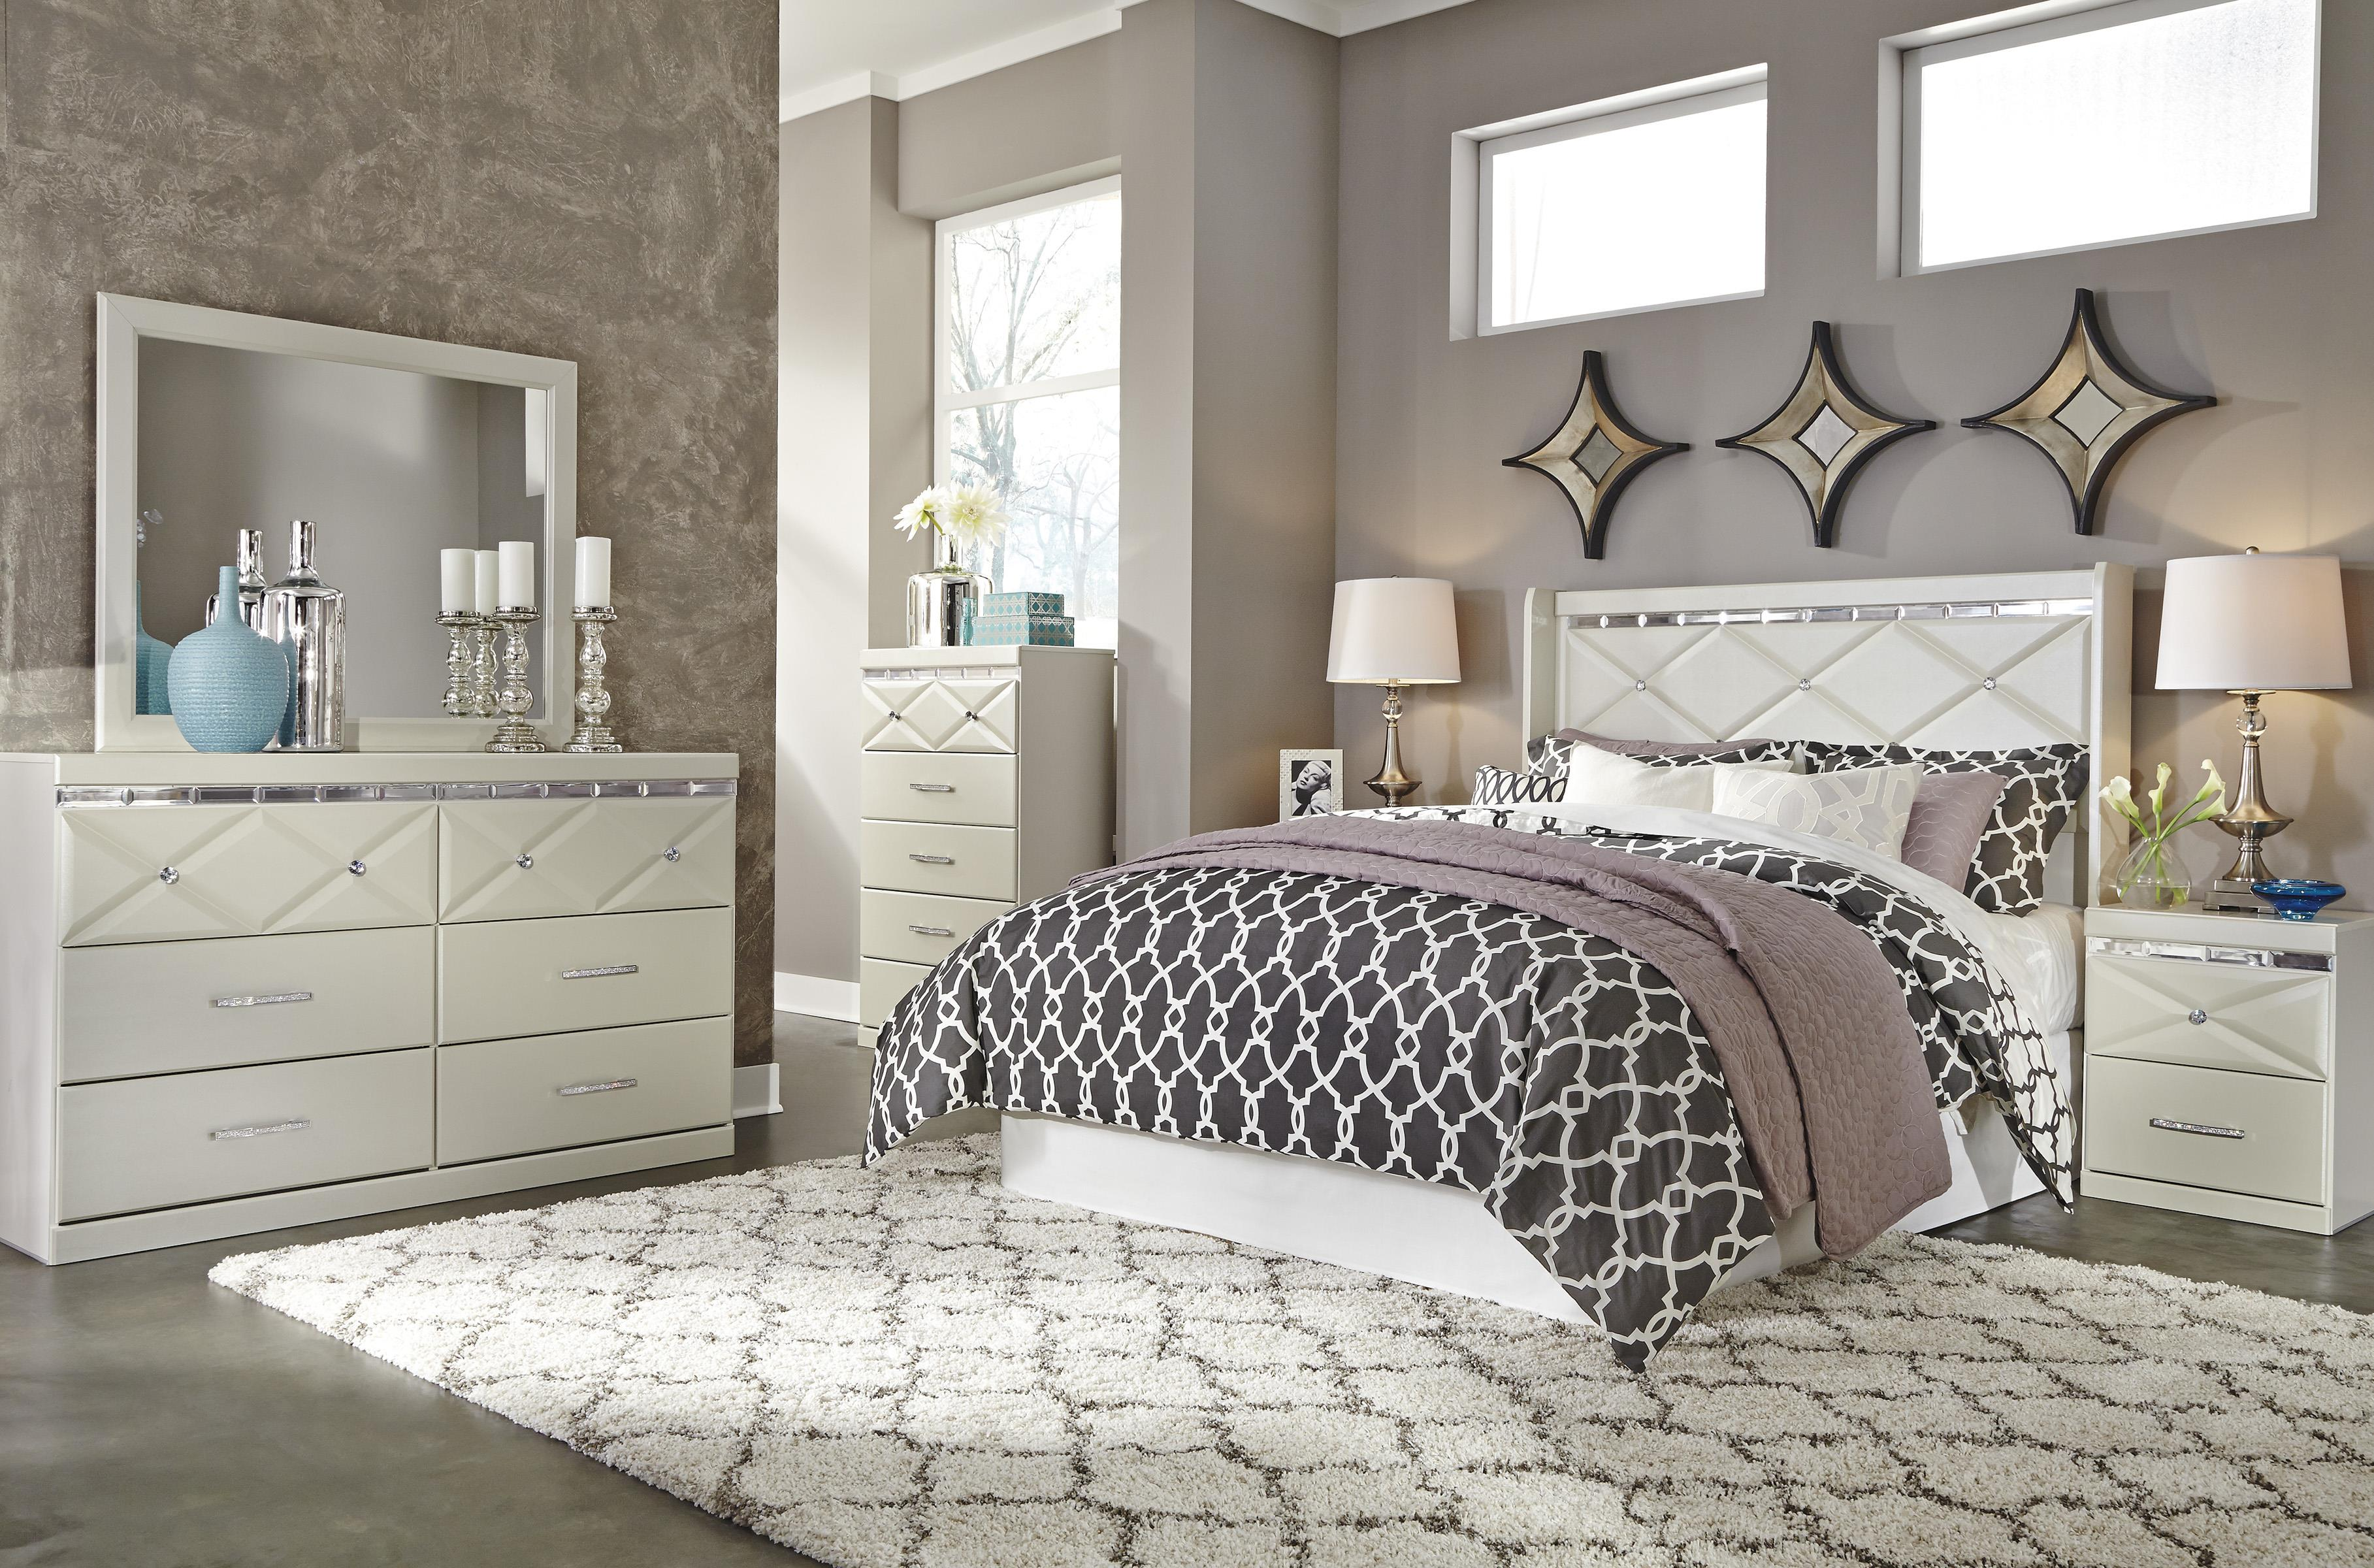 6 Drawer Dresser with Faux Crystal Accents by Signature Design by